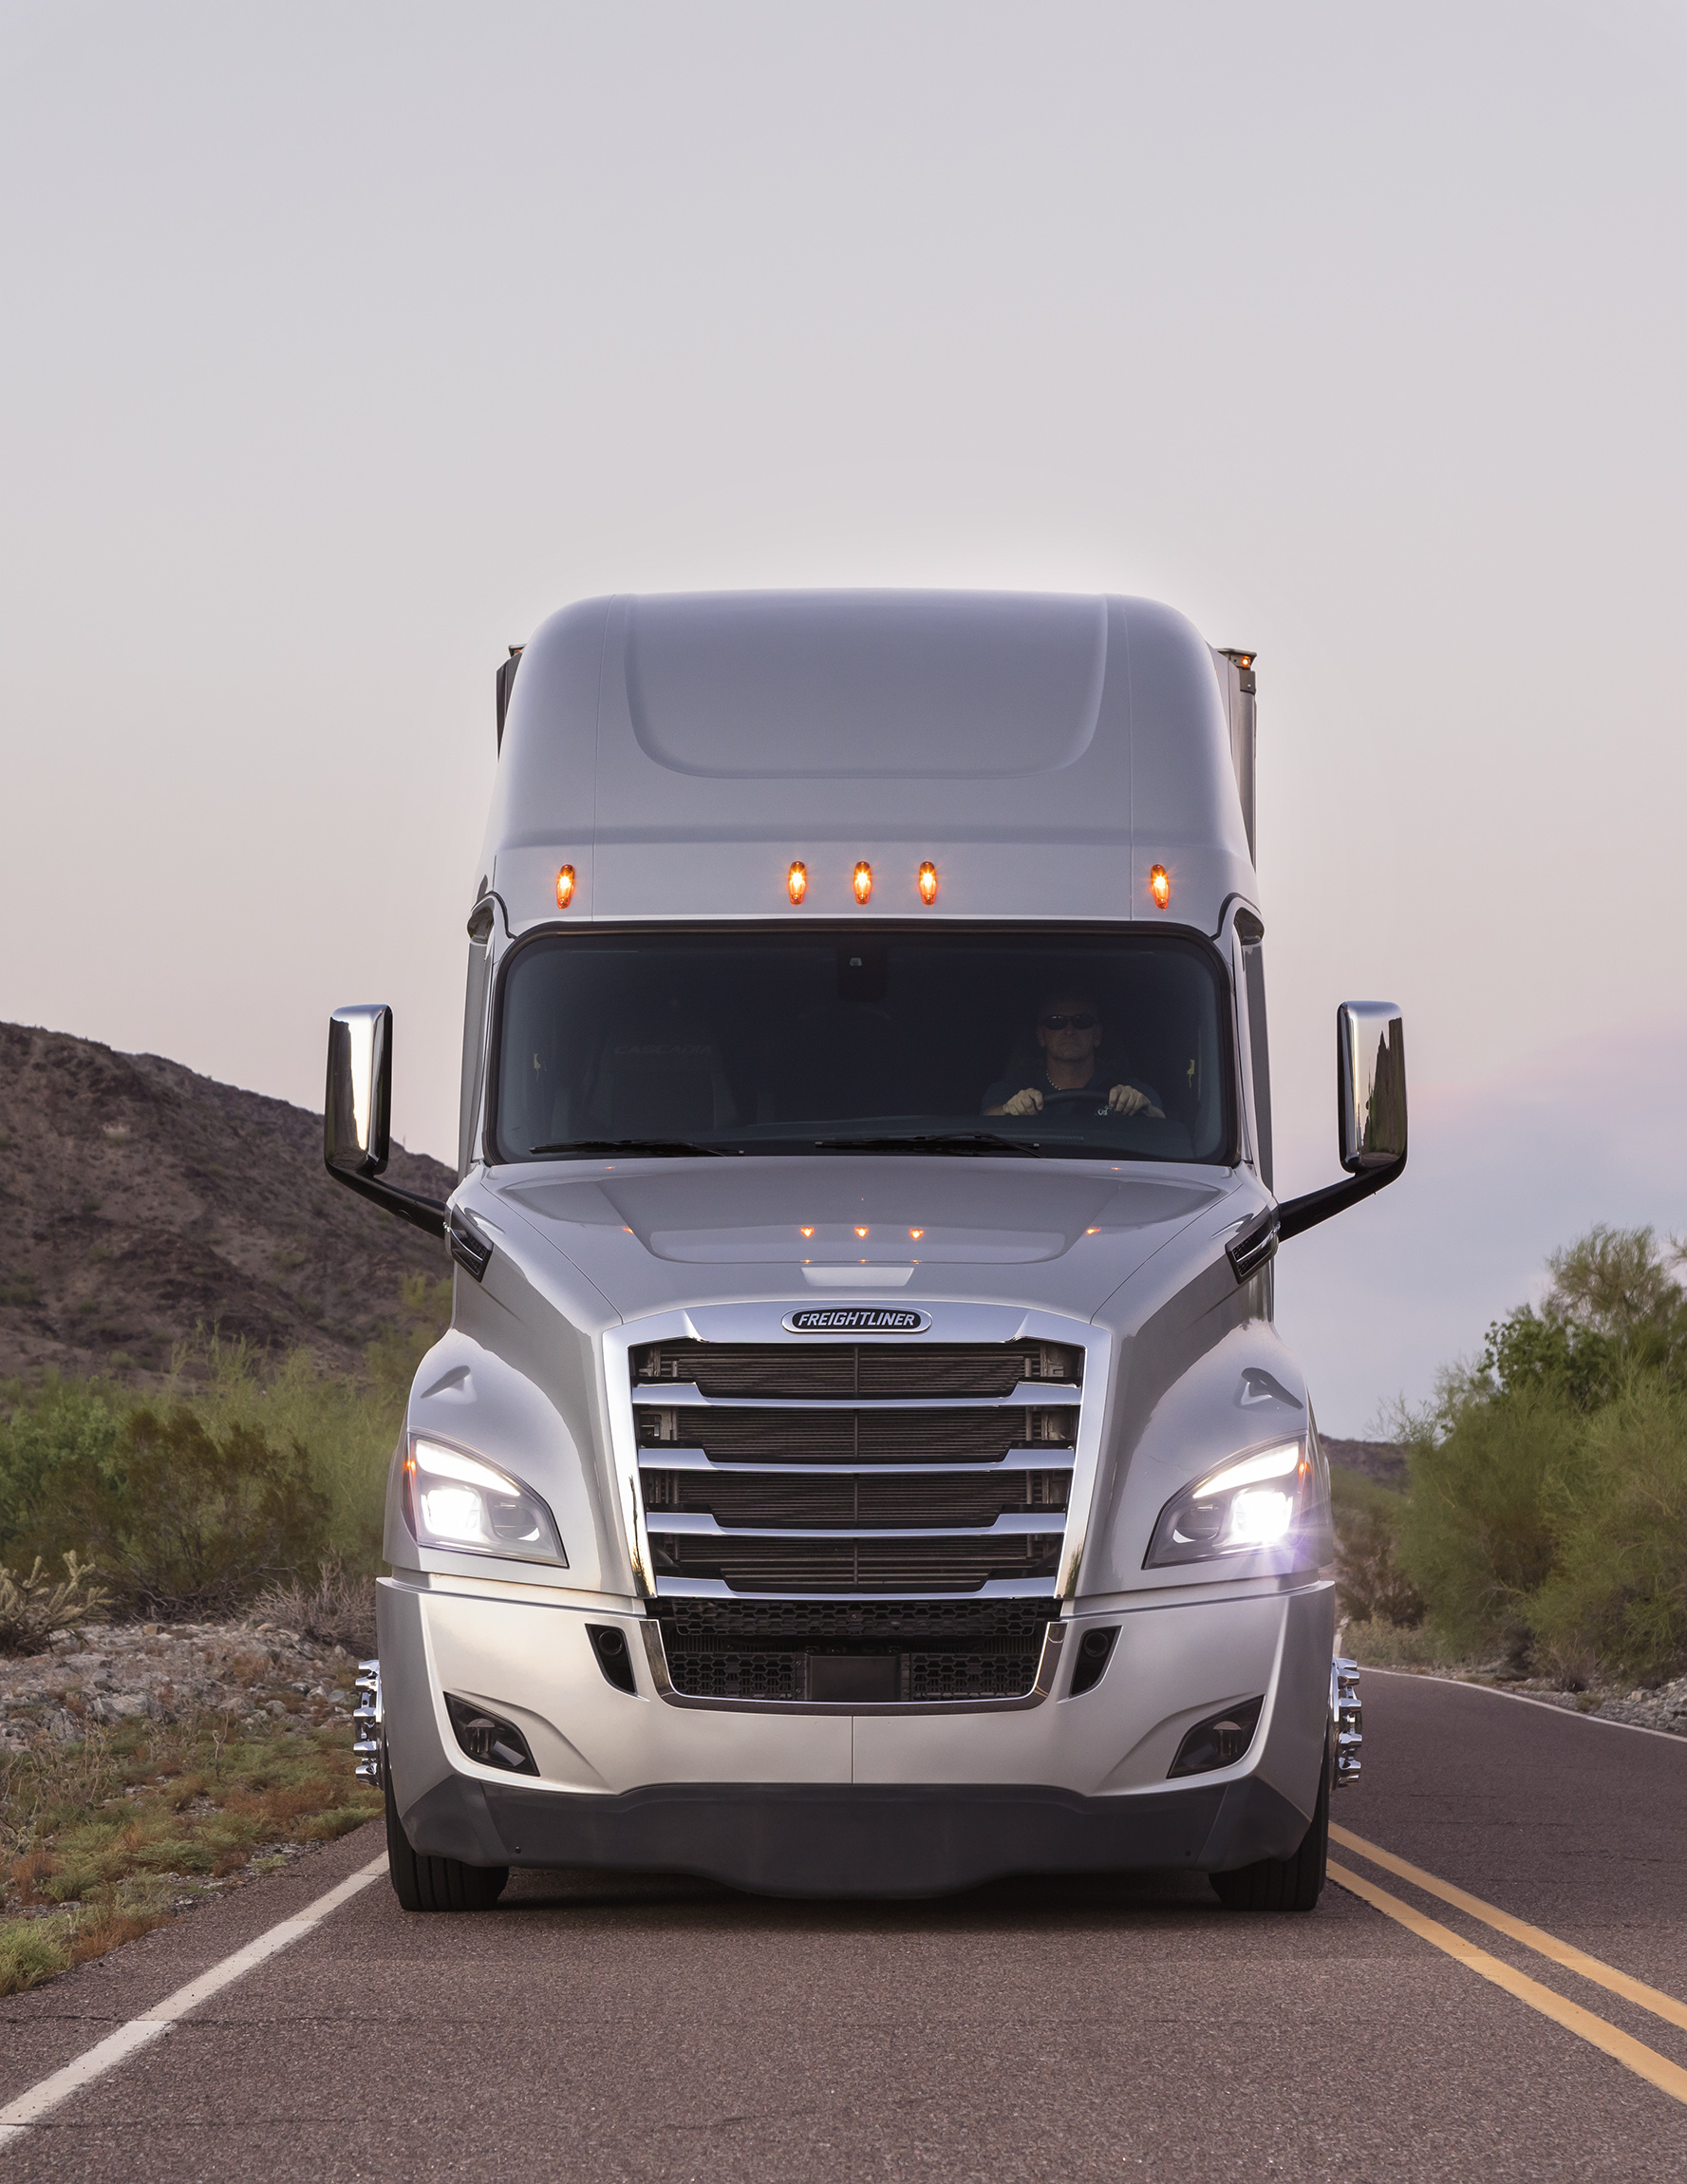 Freightliner Trucks Pushes Innovation with New Cascadia | Demand Detroit